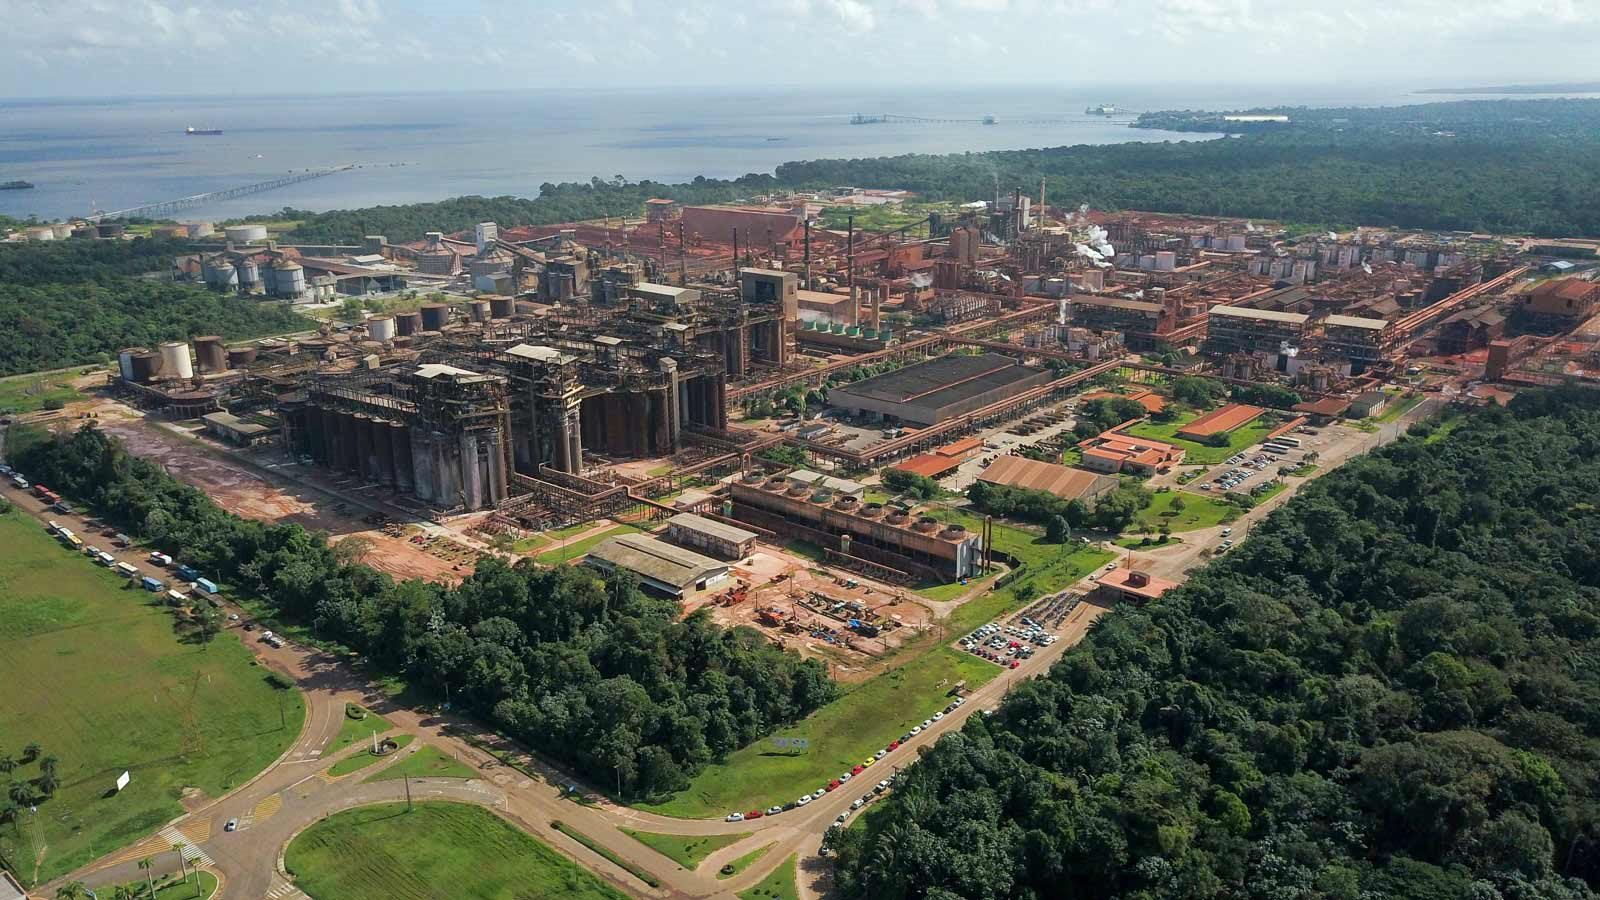 New Fortress, Norsk Hydro finalize terms for Brazil LNG deal